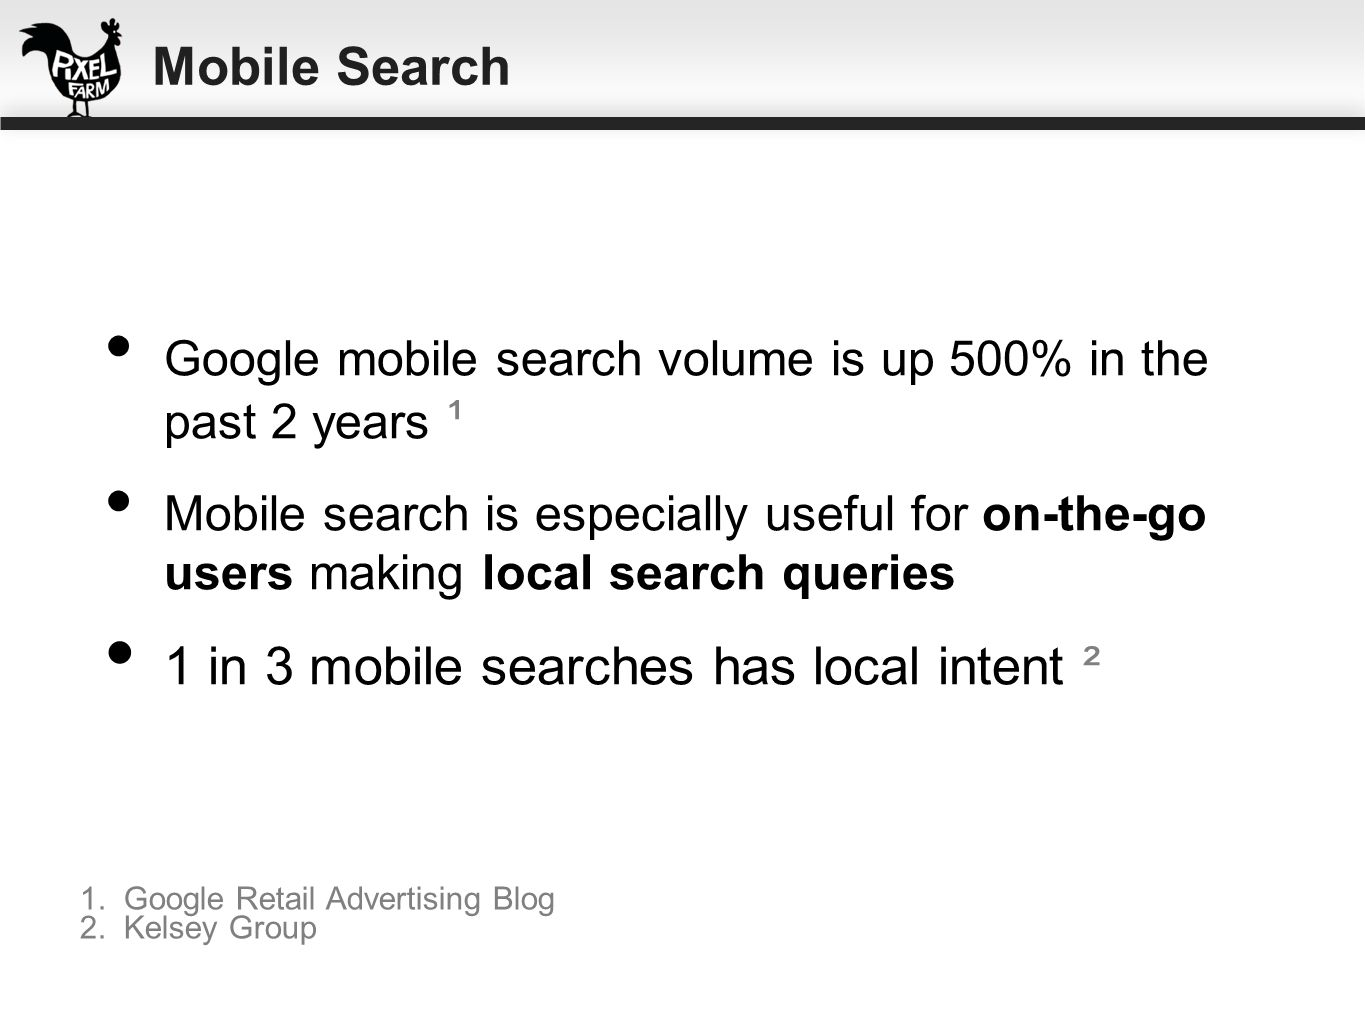 Google mobile search volume is up 500% in the past 2 years ¹ Mobile search is especially useful for on-the-go users making local search queries 1 in 3